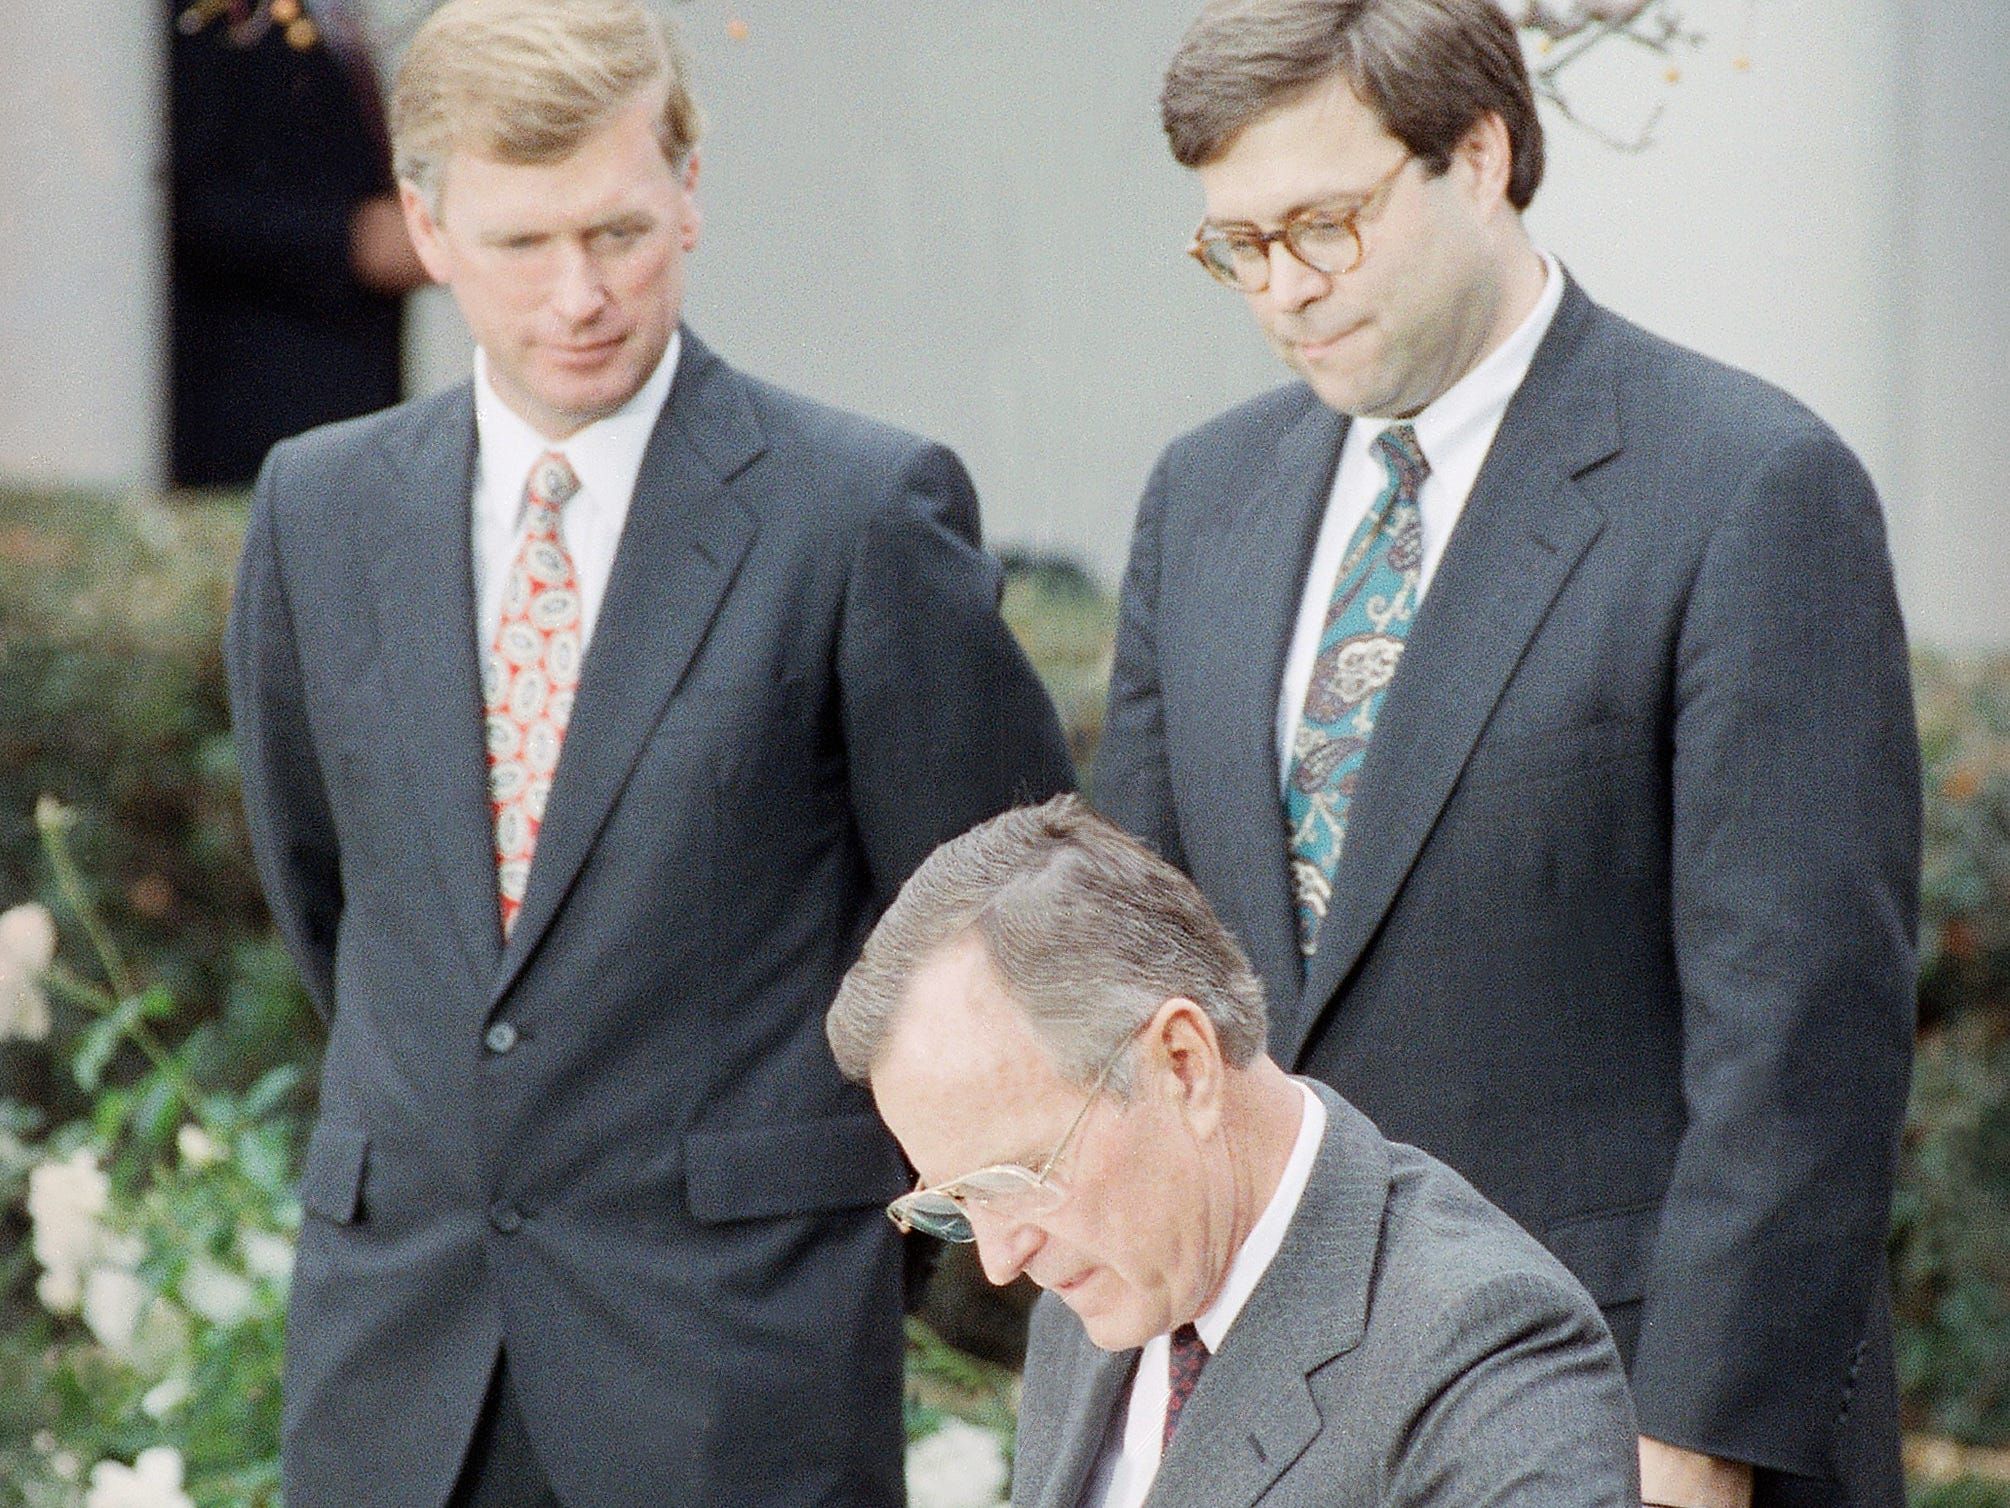 U.S. President George H. Bush signs into law new civil rights guarantees for women and minorities at a Rose Garden ceremony, Thursday, Nov. 21, 1991 in Washington, as Vice President Dan Quayle, left, and Acting Attorney General William Barr look on. The bill signing capped a two-year struggle with congress over whether the legislation encouraged job quotas. (AP Photo/Marcy Nighswander)